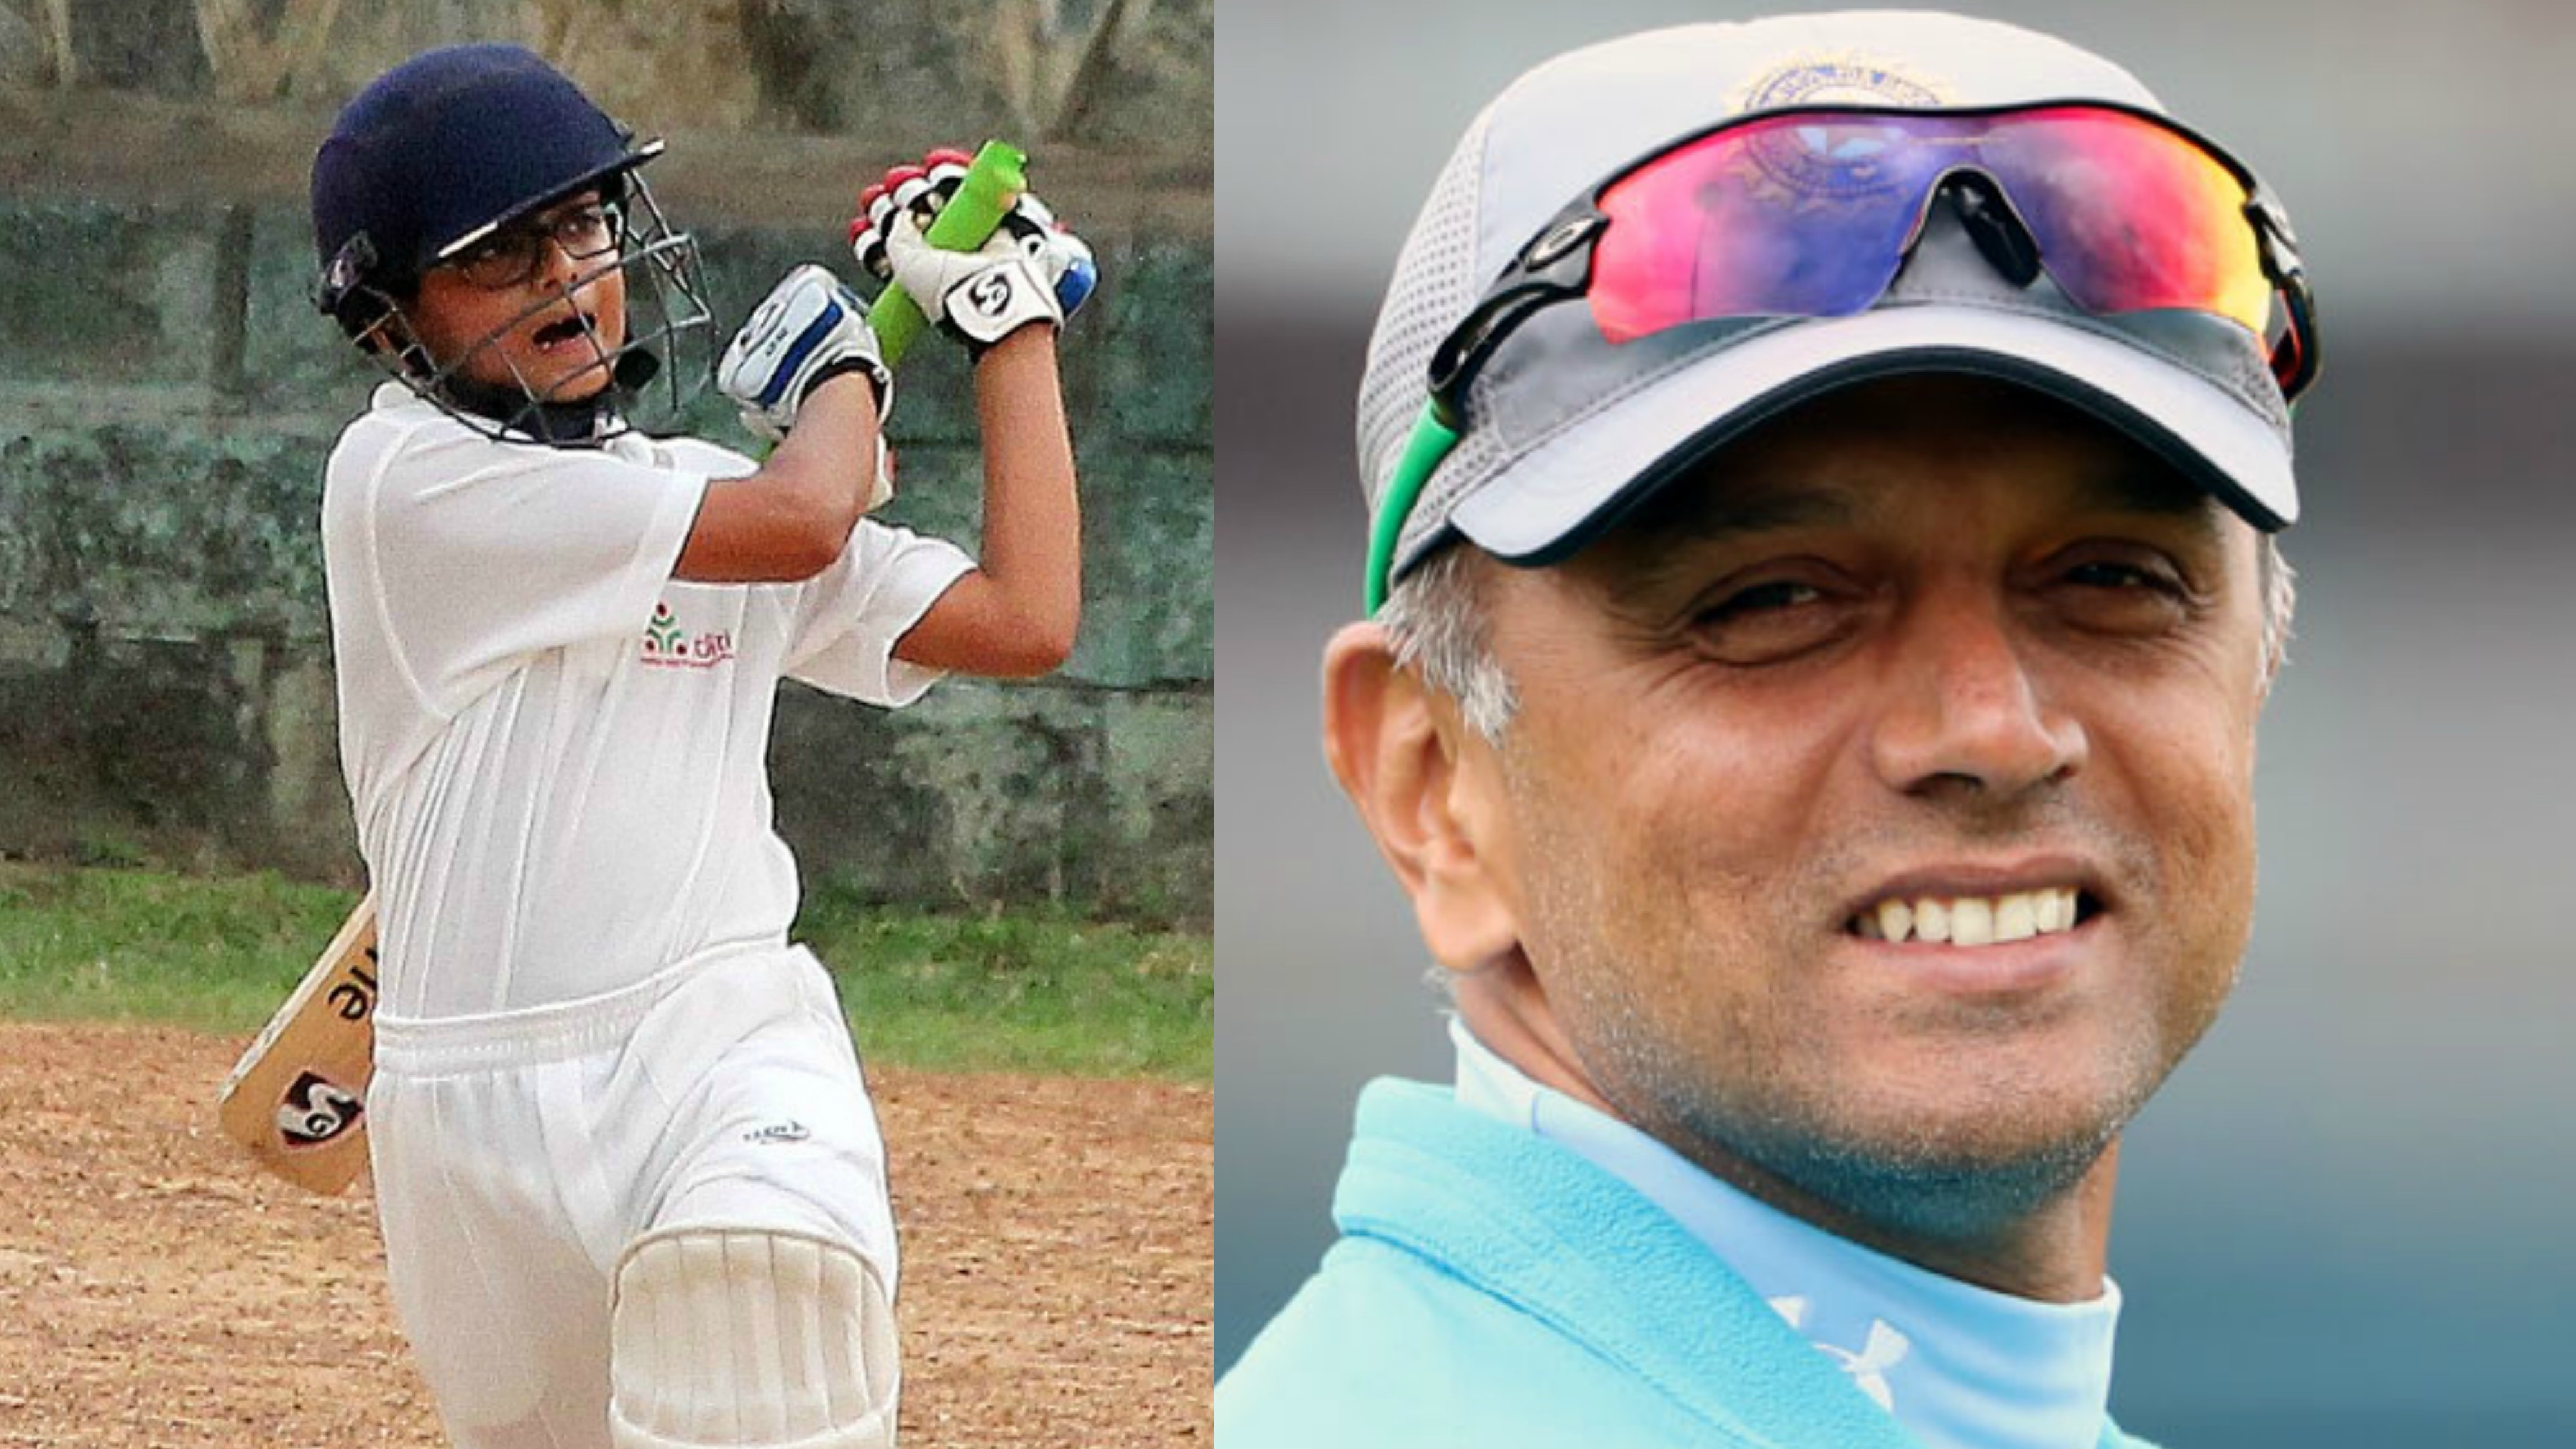 Rahul Dravid's son Samit hits another double century in less than two months